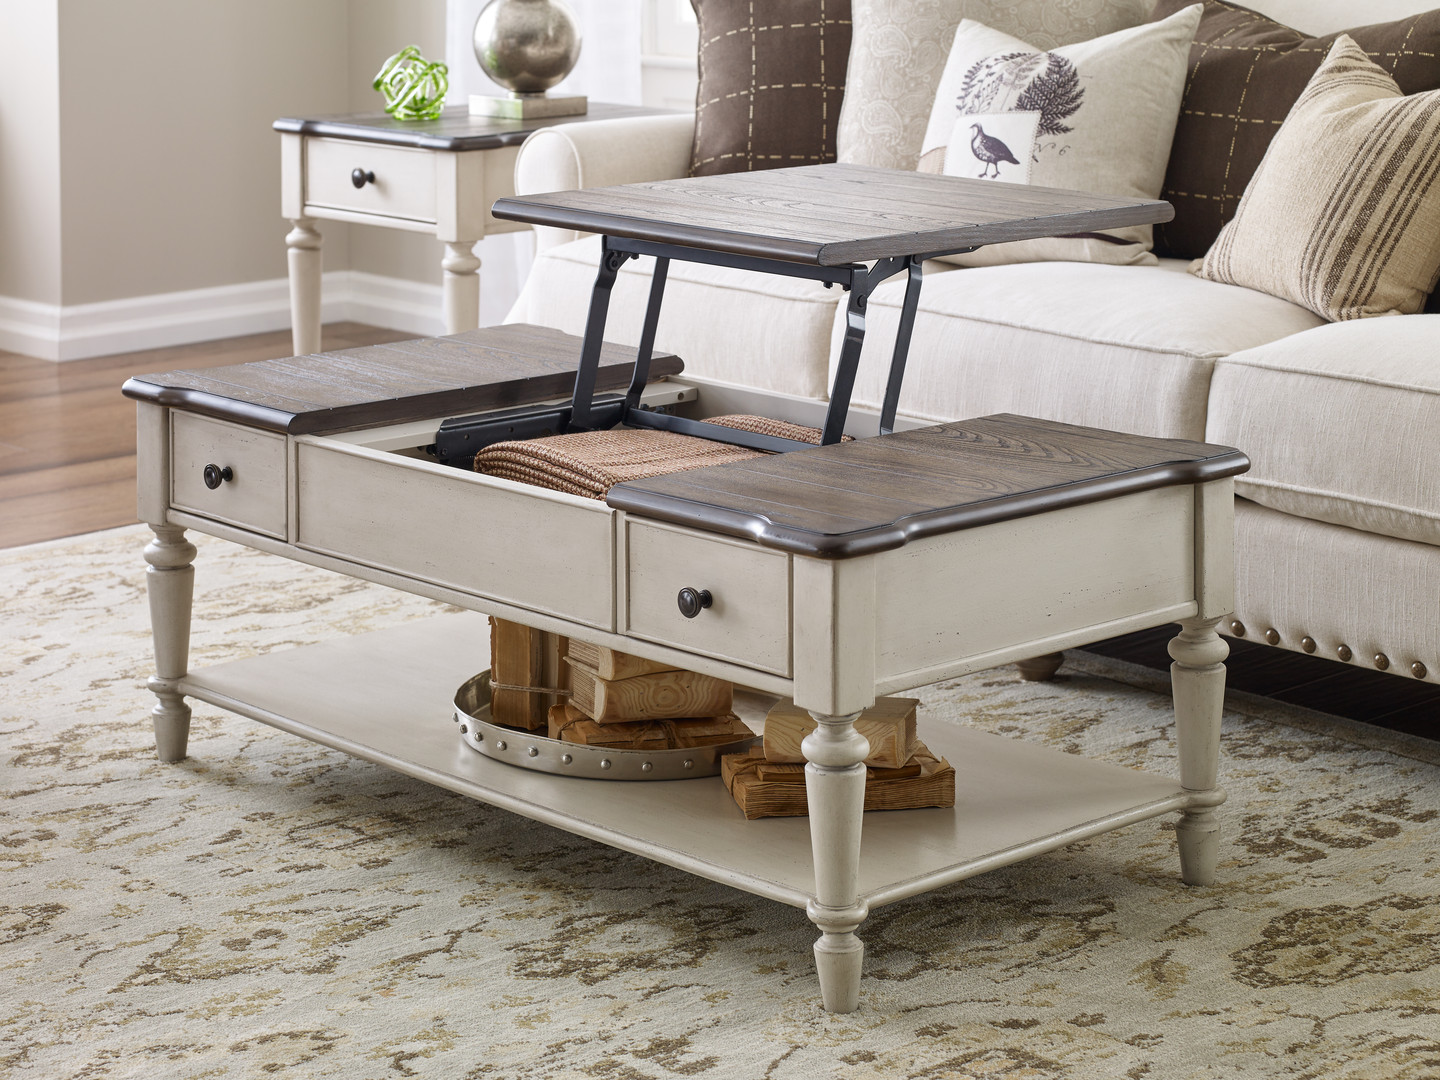 Lift-top Coffee Table, Open